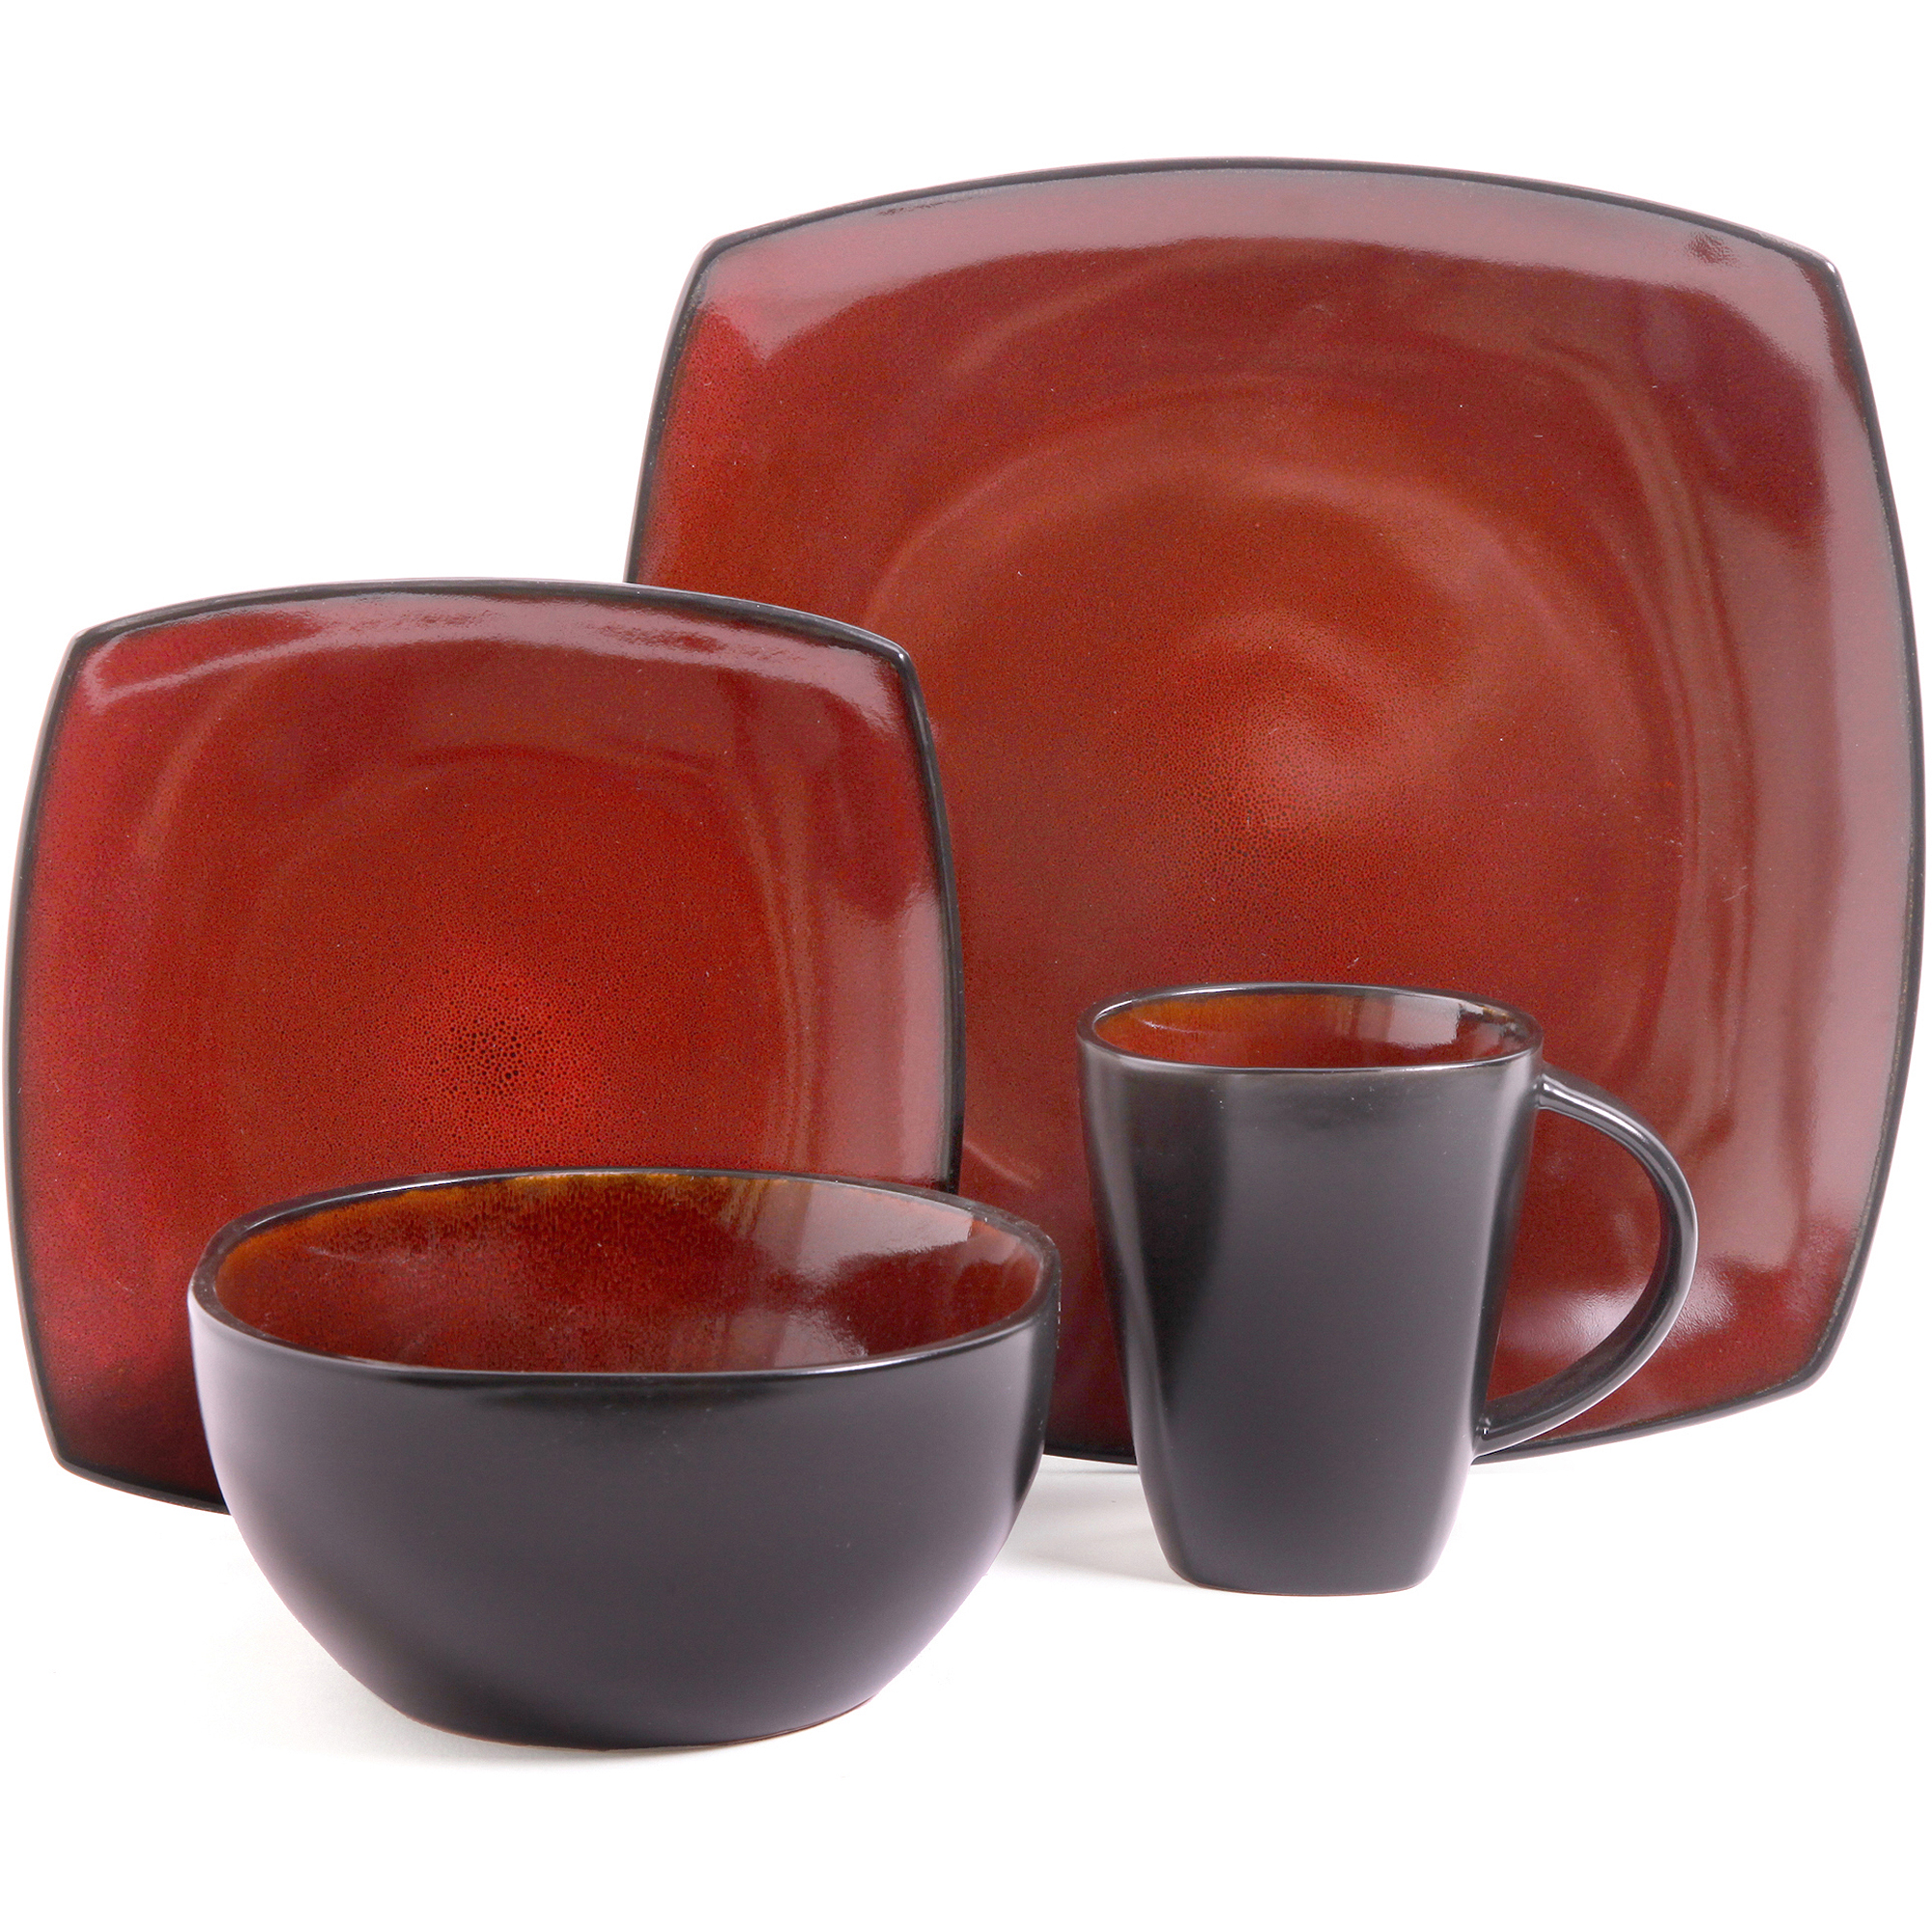 Better Homes U0026 Gardens 16 Piece Dinnerware Set, Tuscan Red   Walmart.com